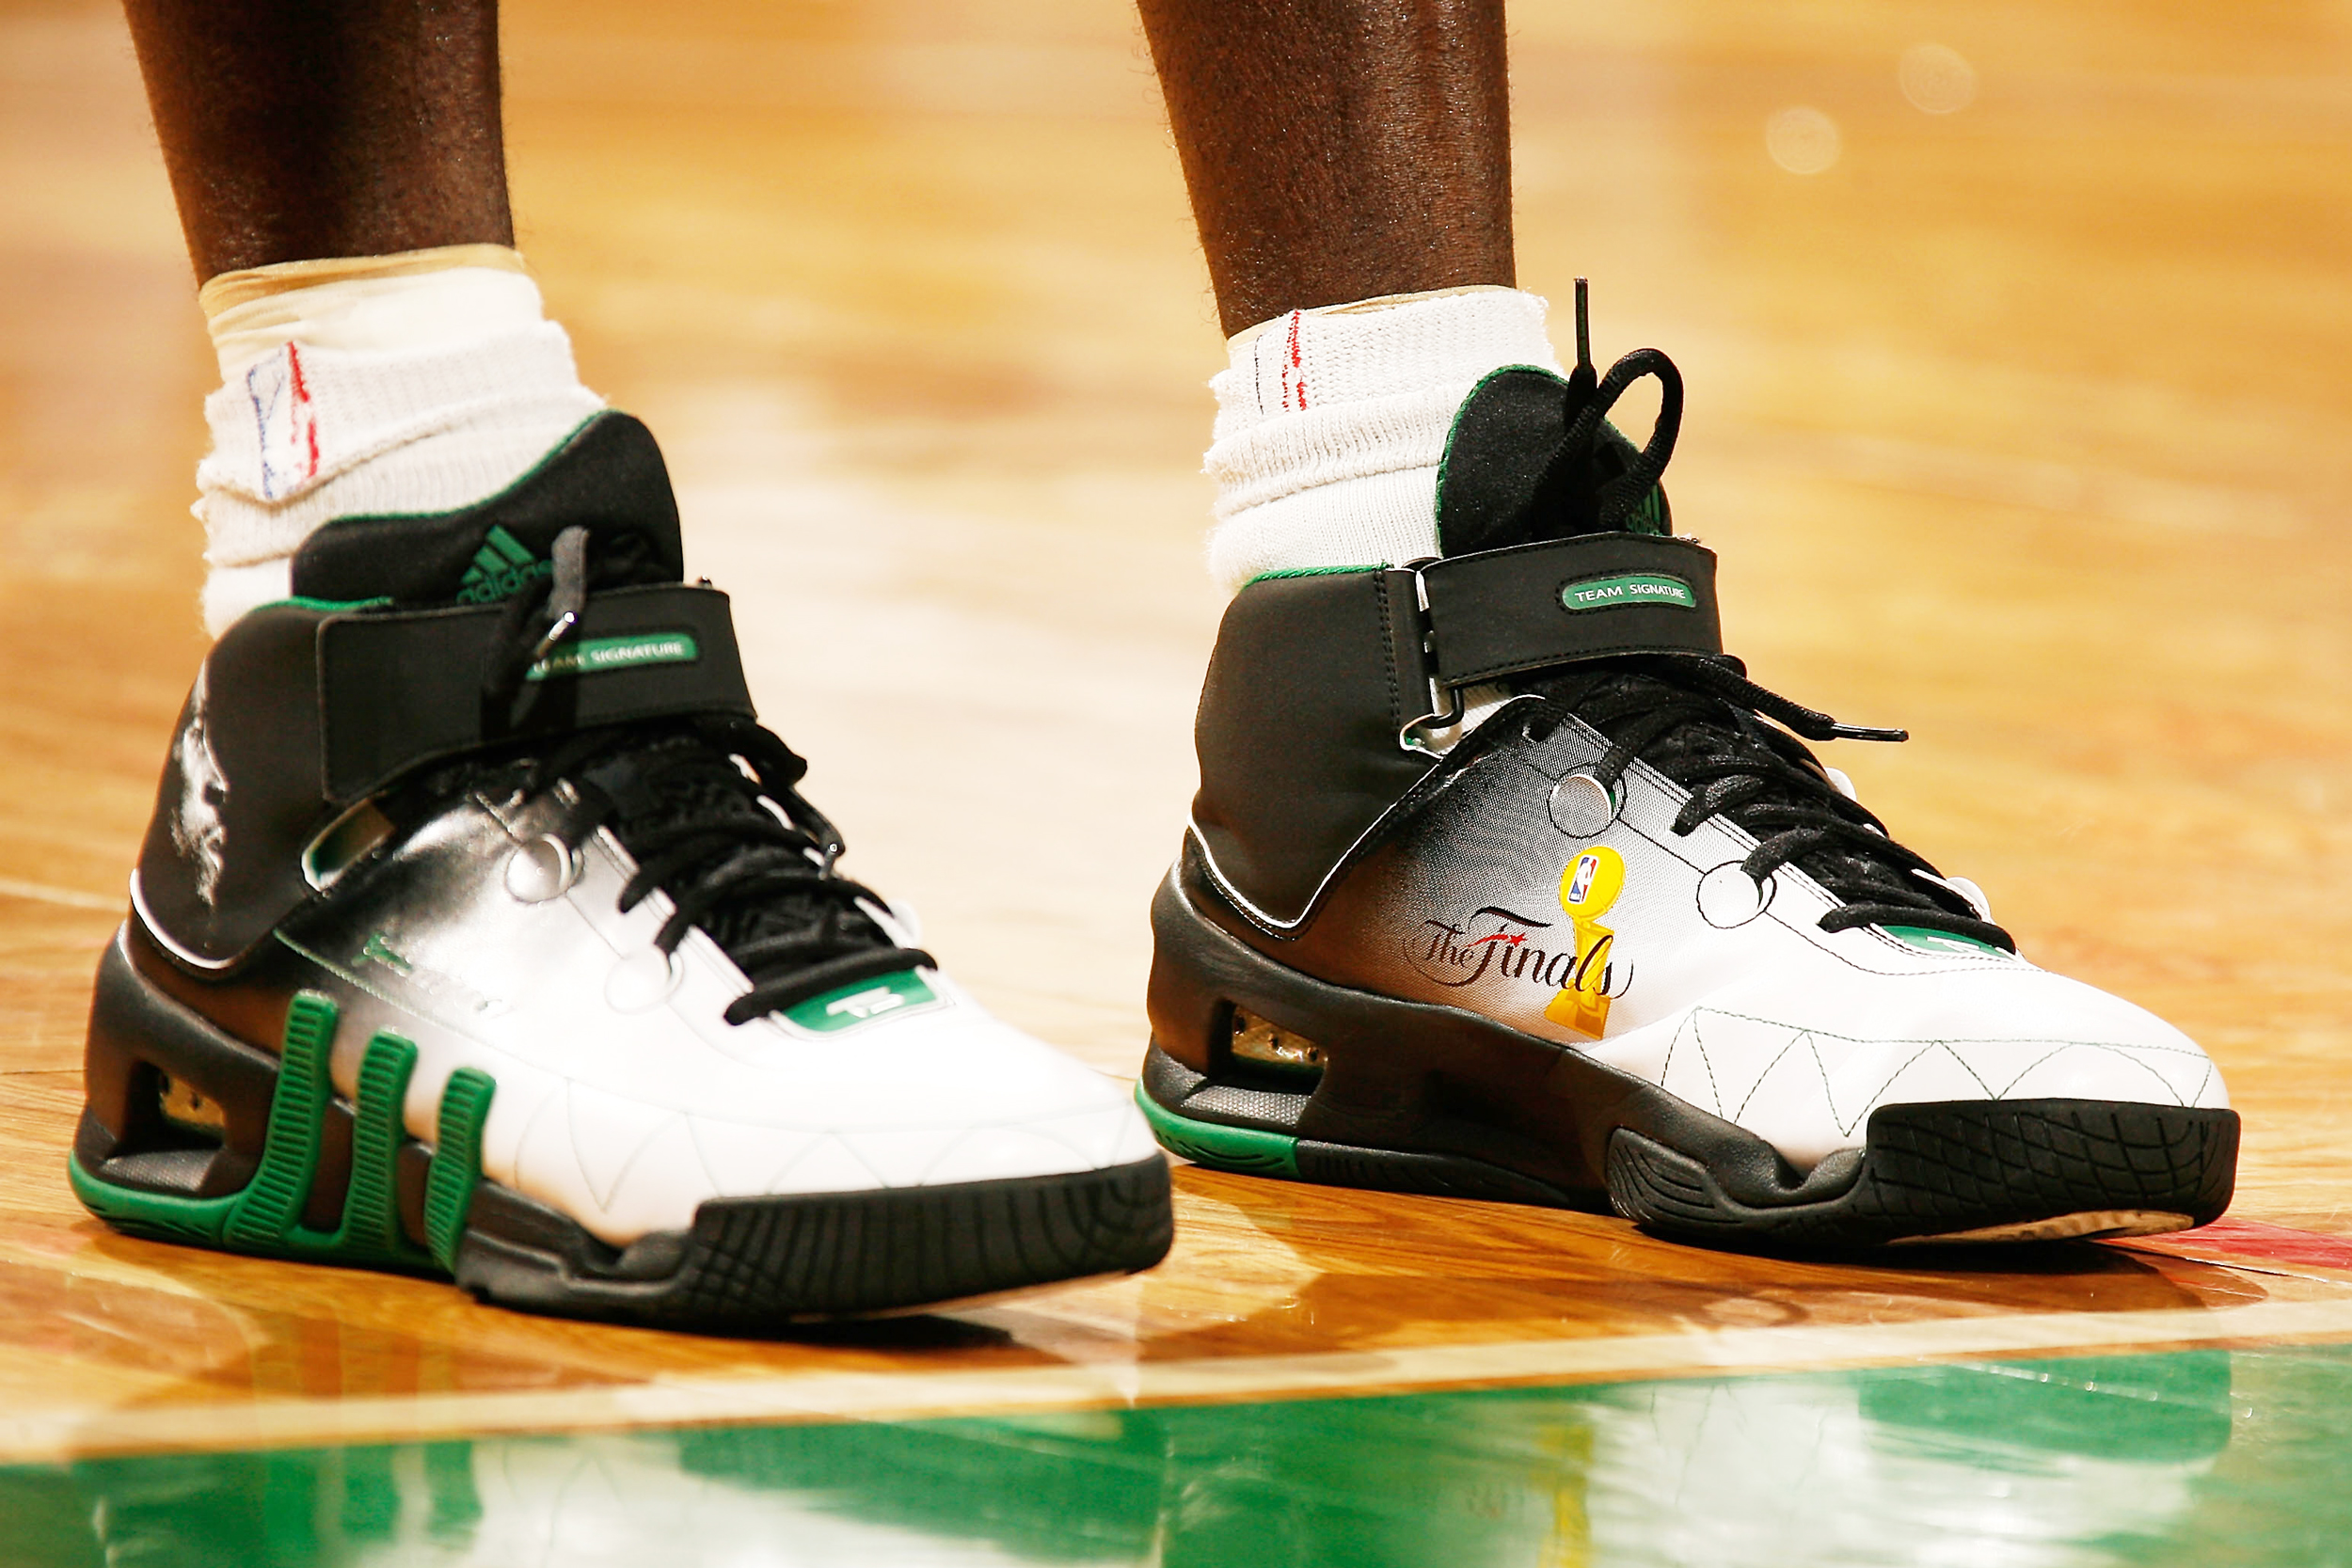 super popular 4b358 af456 Kevin Garnett of the Boston Celtics wears a pair of unique Adidas sneakers  in honor of the 2008 NBA Finals against the Los Angeles Lakers on June 17,  2008, ...